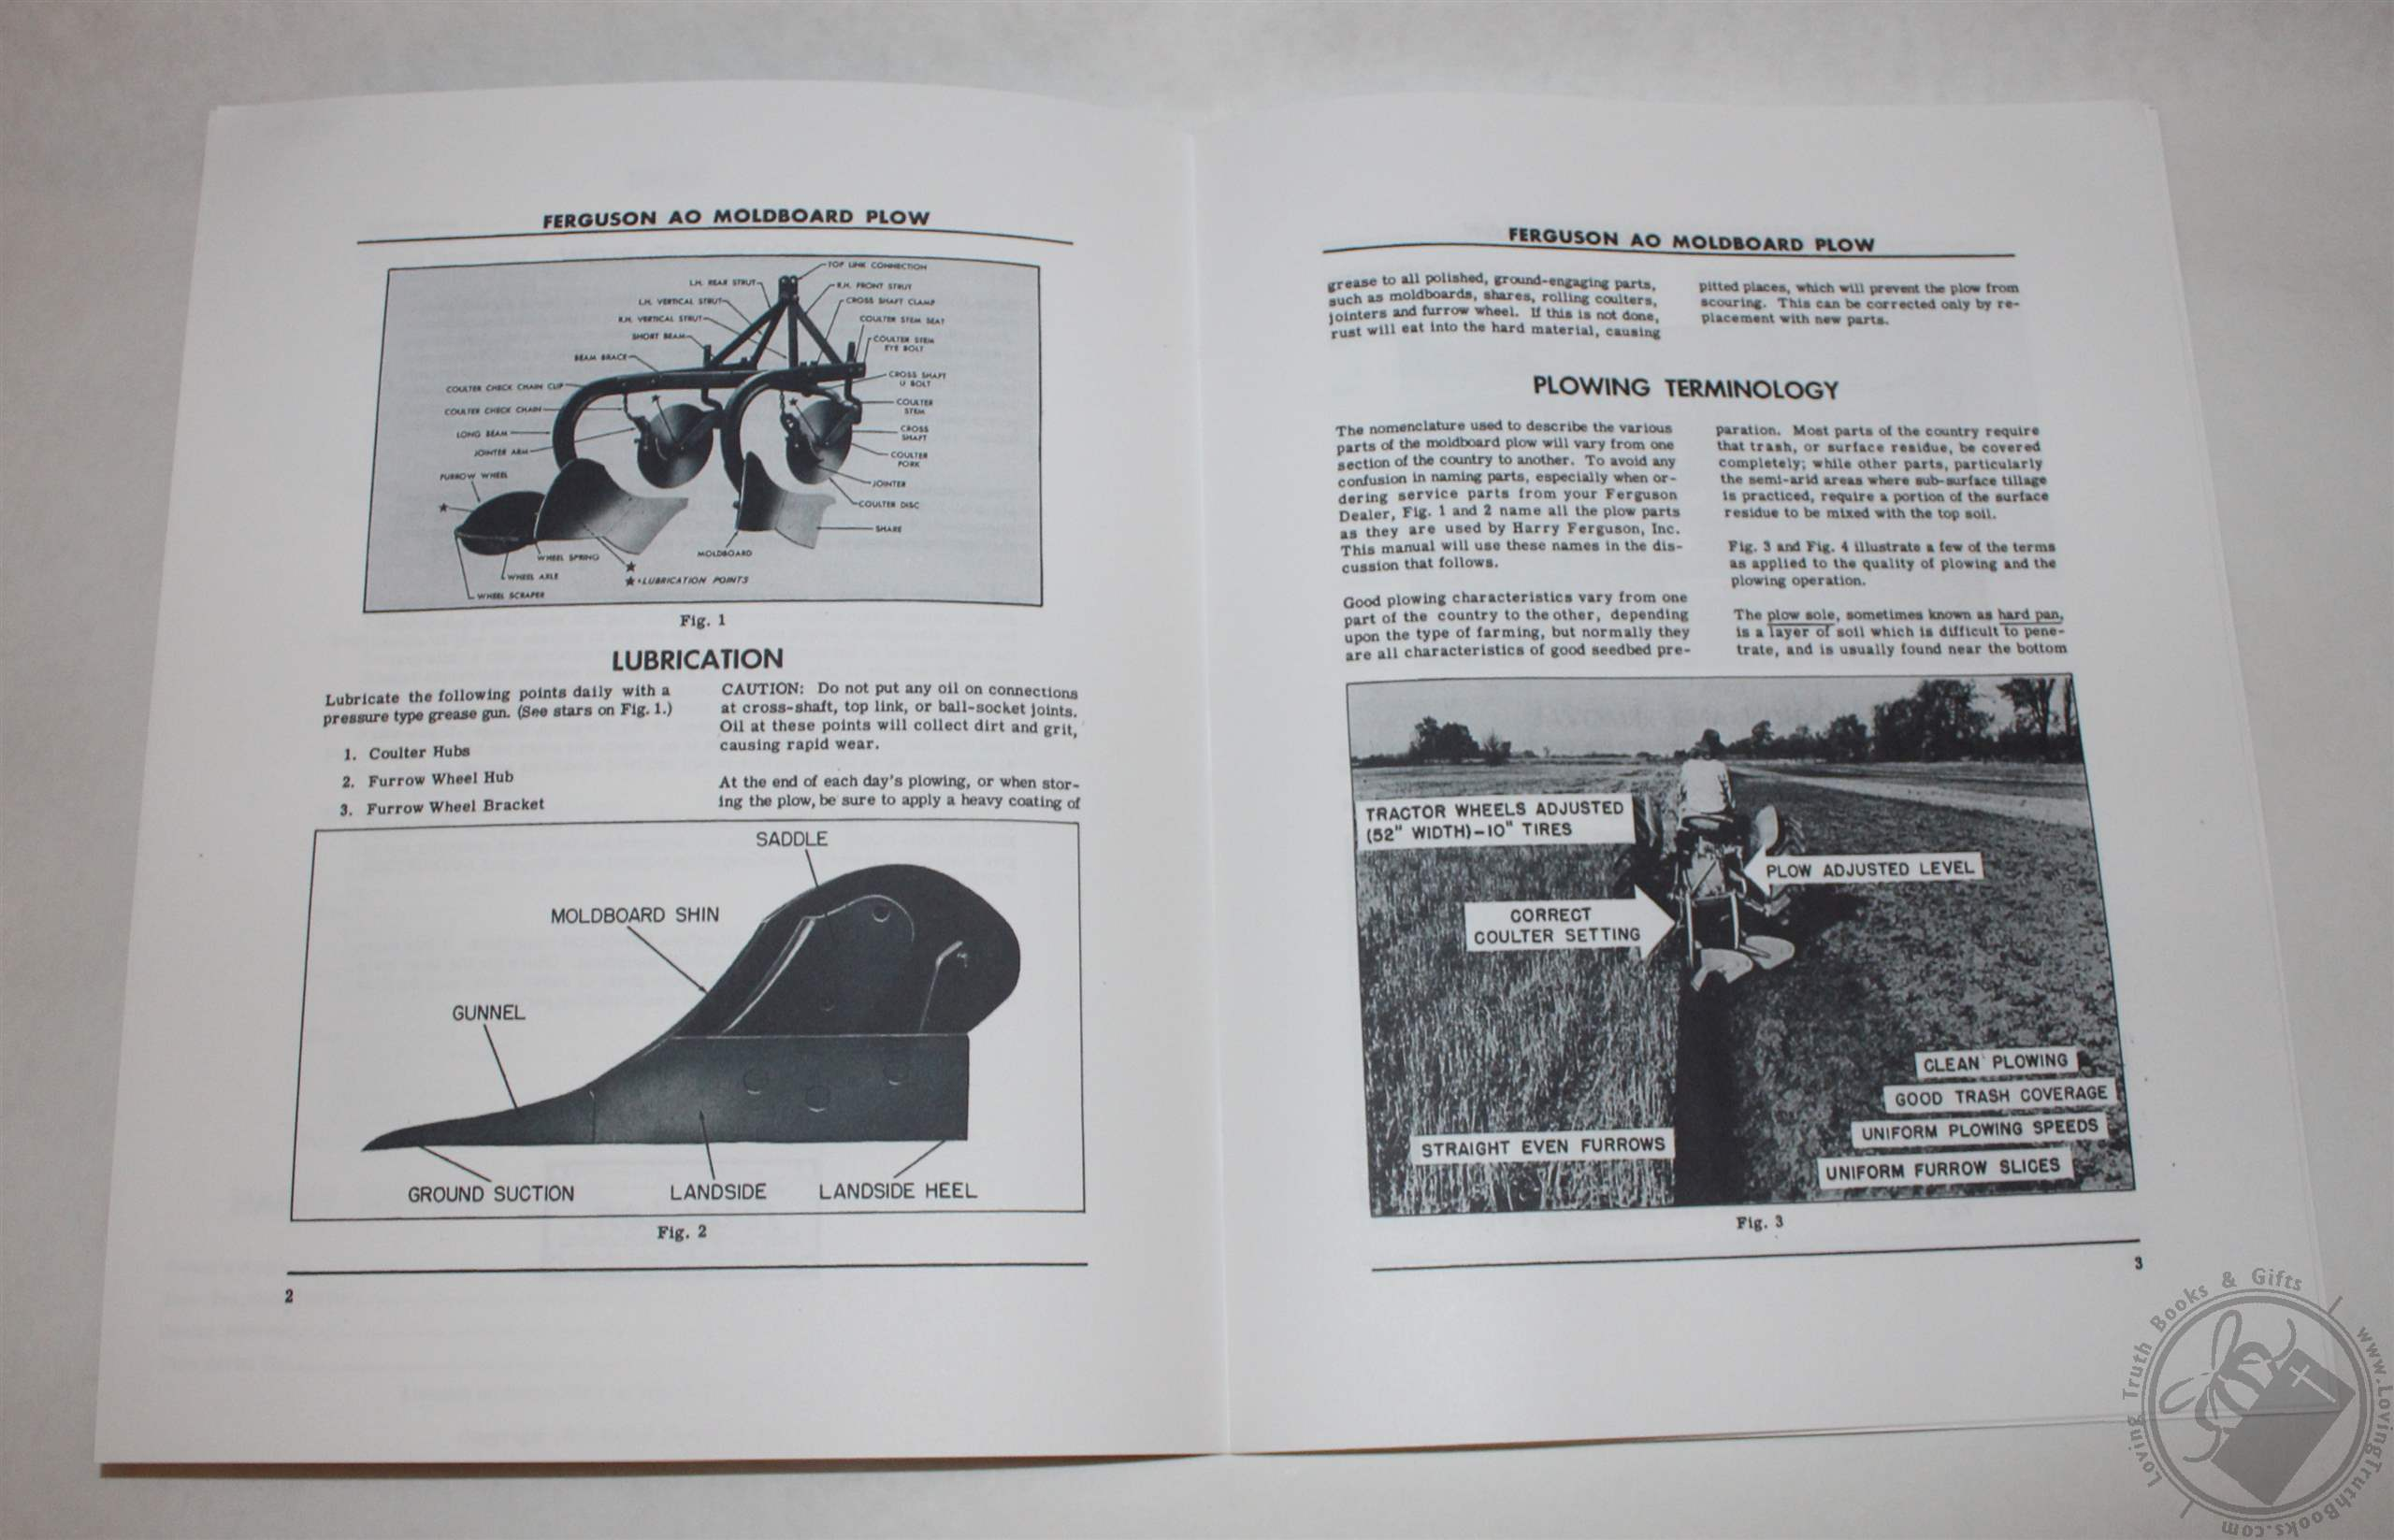 Ferguson Ao Moldboard Plow Operators Manual  U0026 Parts Book